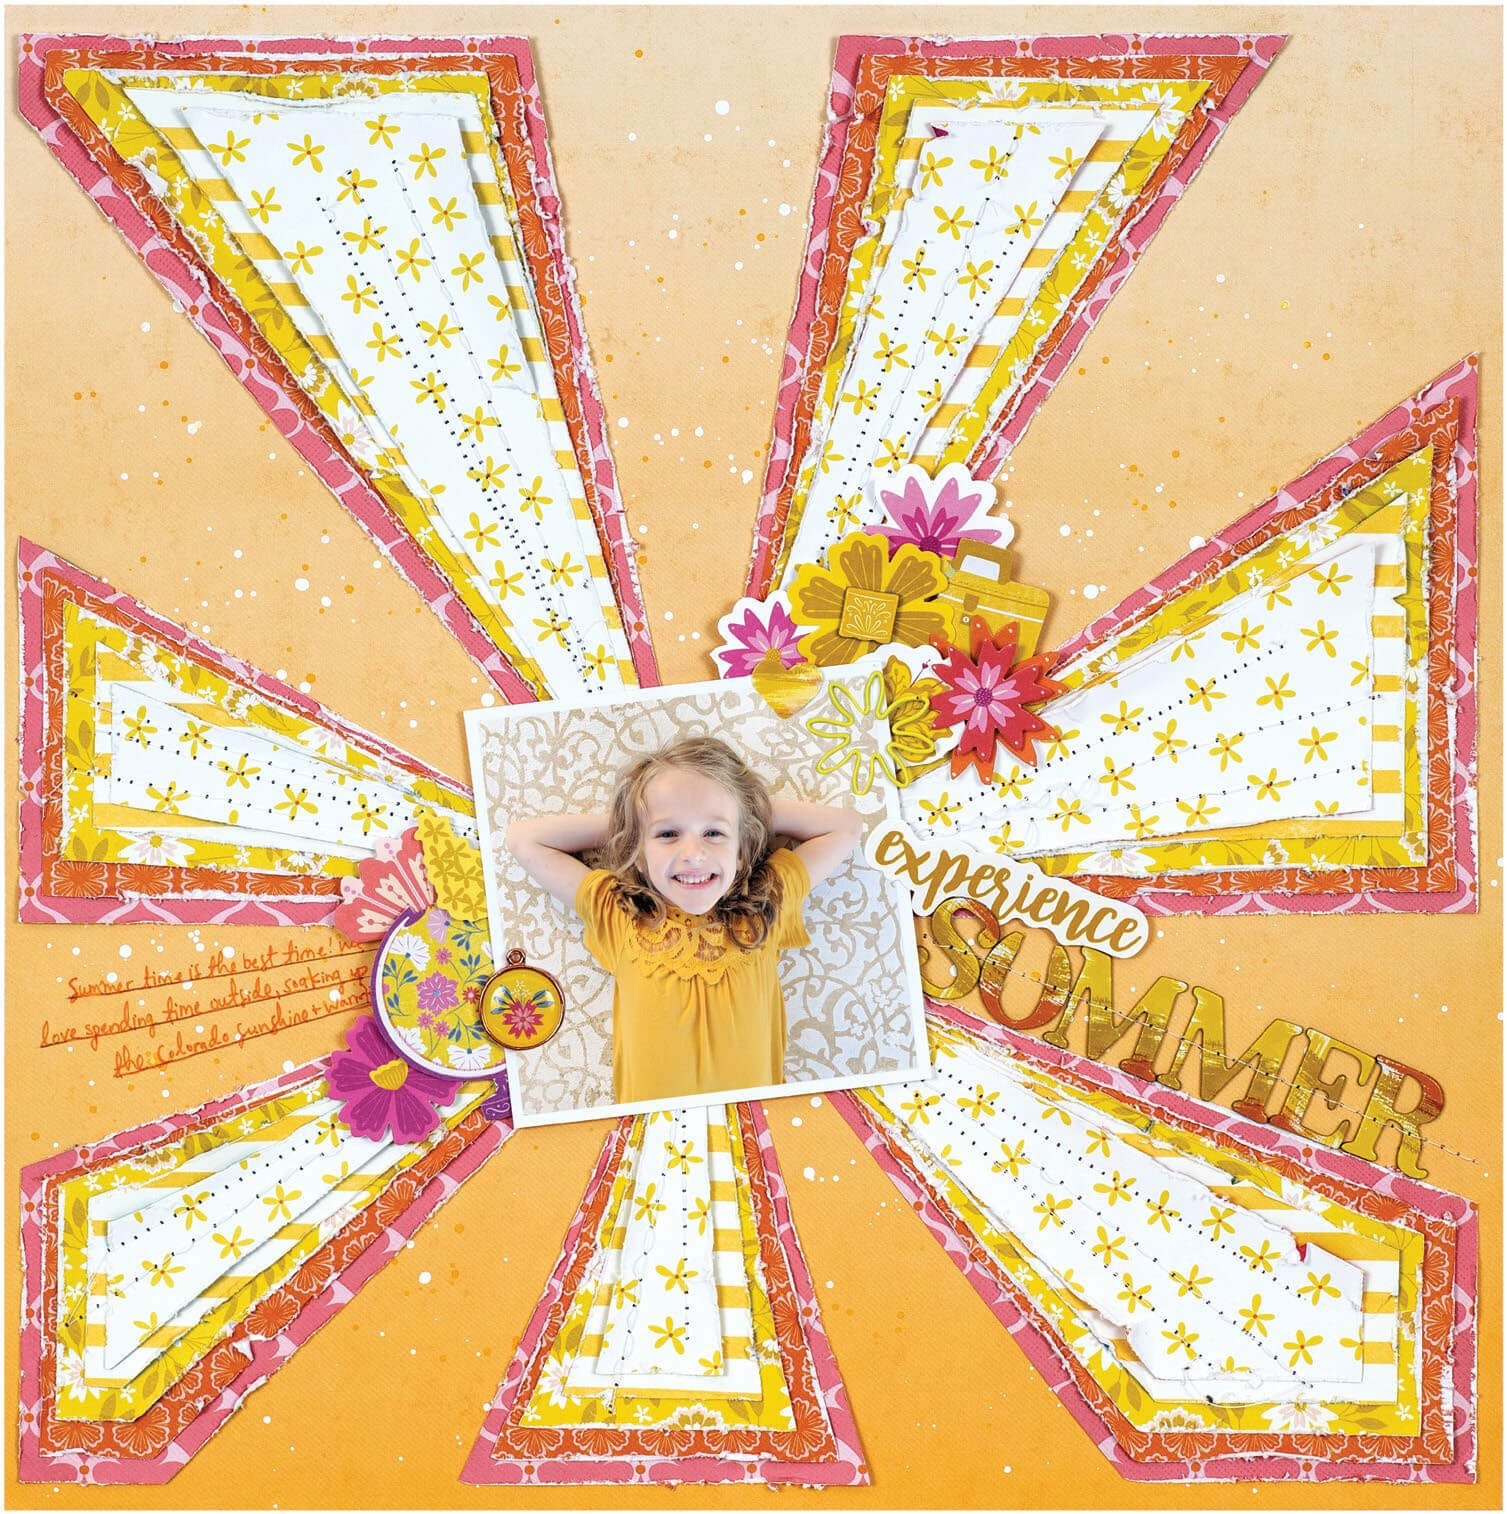 Scrapbook & Cards Today - Summer 2019 - Experience Summer layout by Paige Evans